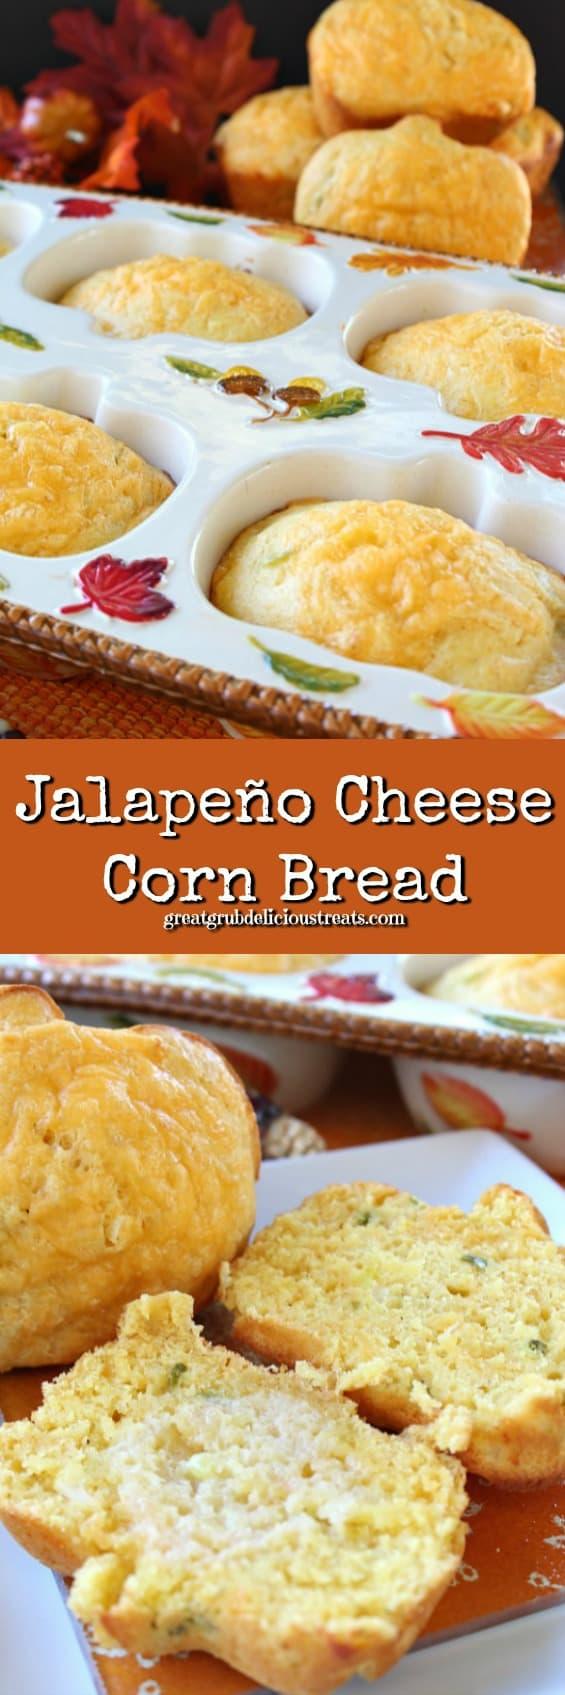 Jalapeno Cheese Corn Bread